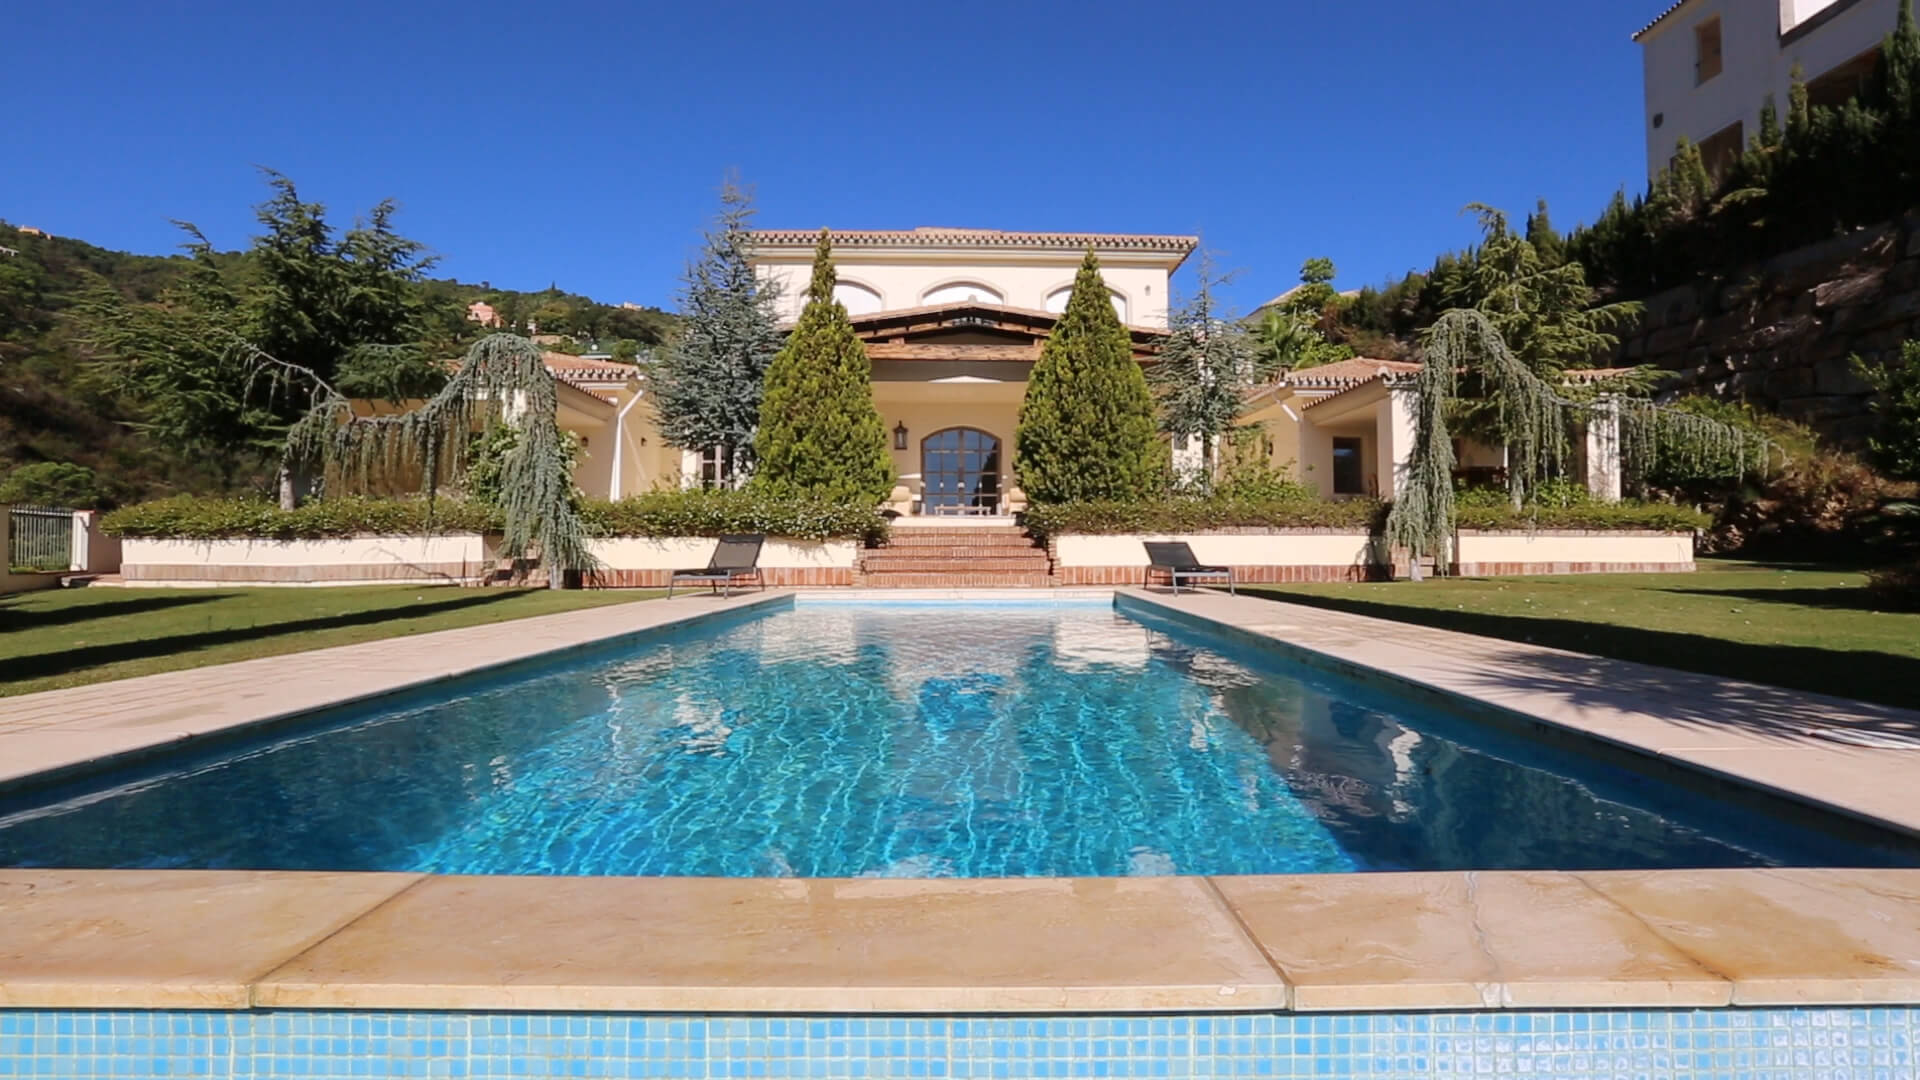 Luxury Holiday Villa With Pool Spain Holiday Villa Holidays Apartments To Rent In Spain 2019